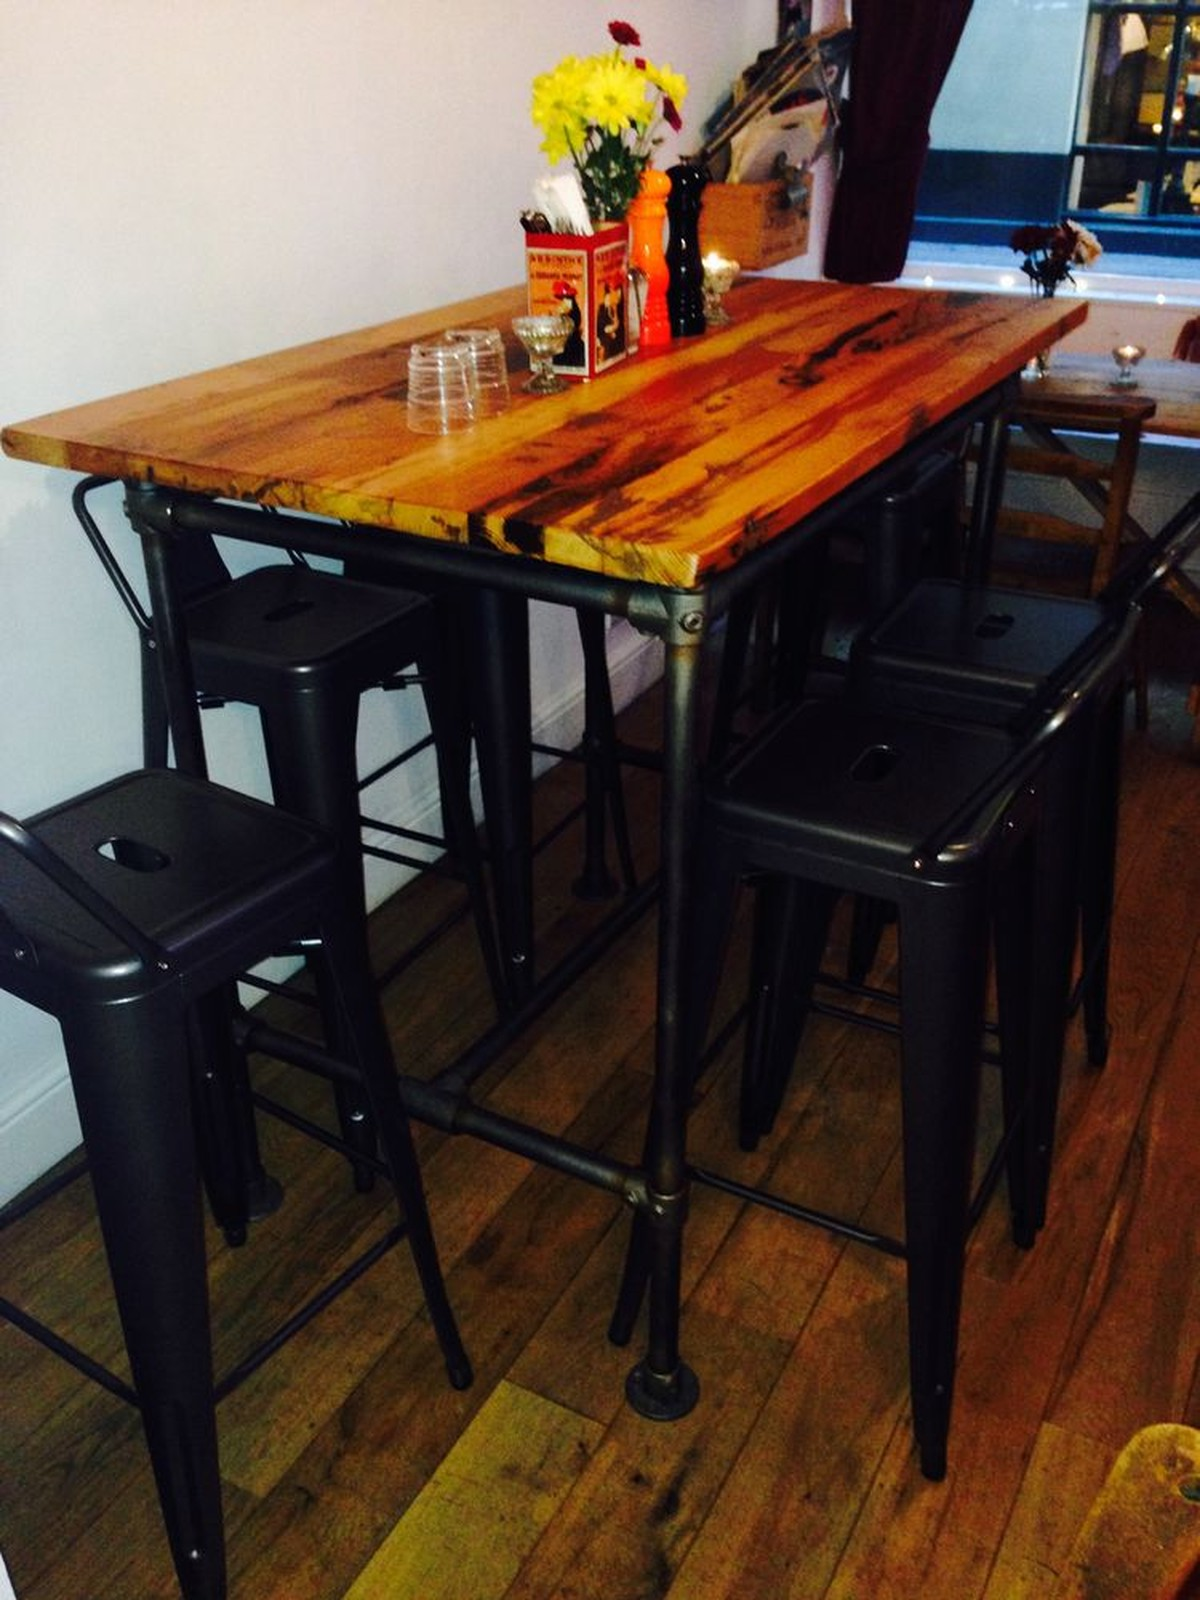 secondhand chairs and tables restaurant chairs reclaimed scaffold high bar table with stools. Black Bedroom Furniture Sets. Home Design Ideas